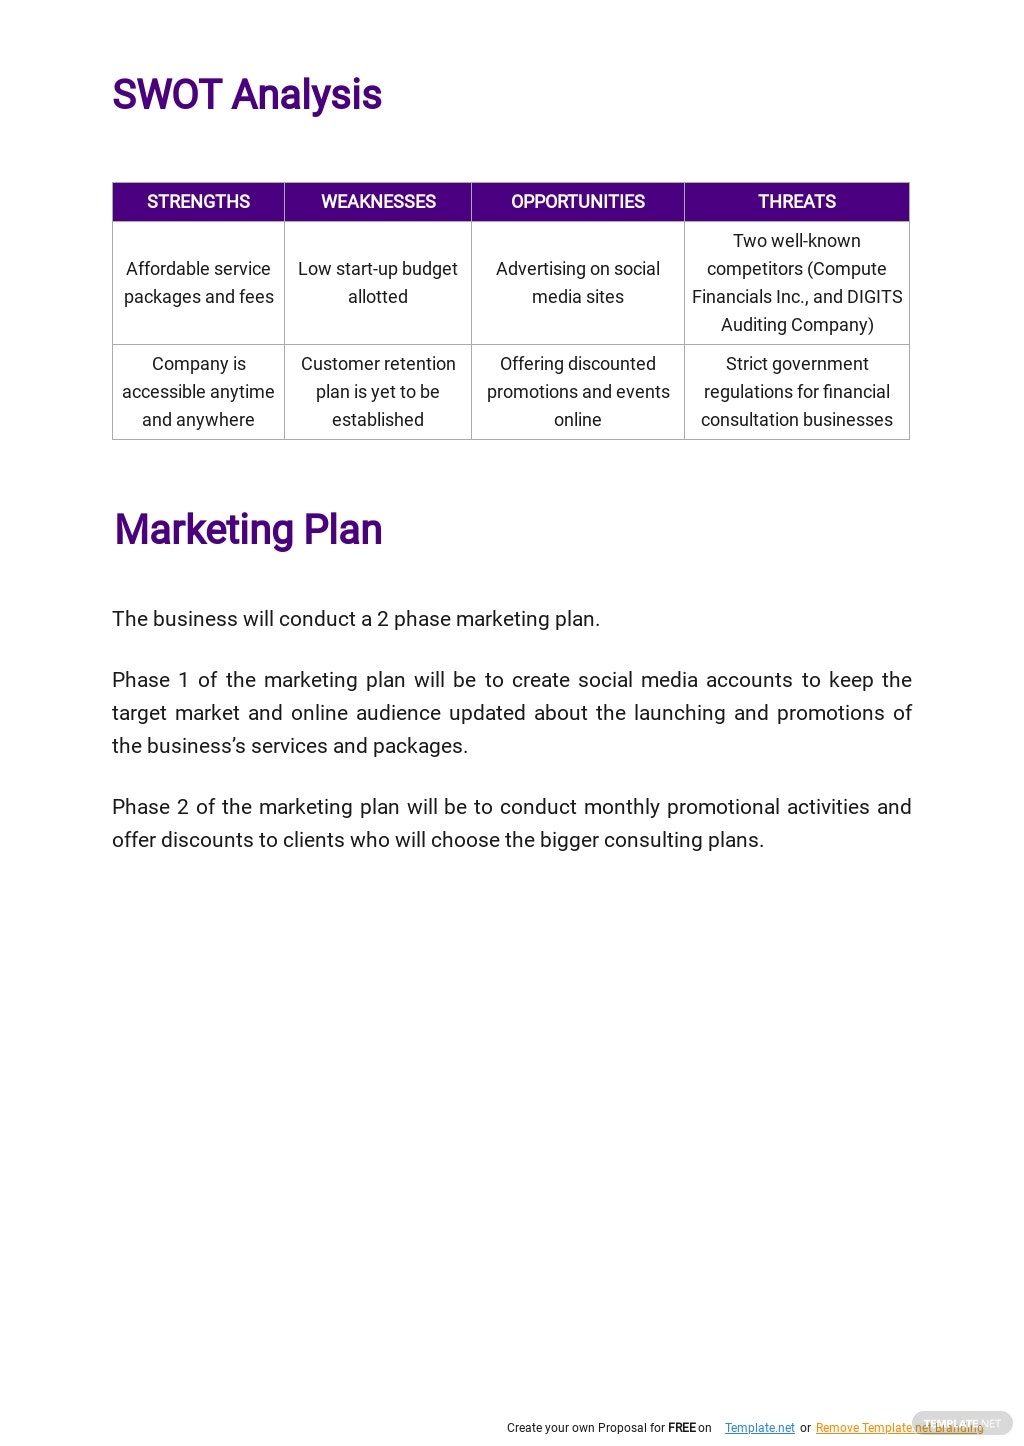 Auditing and Consulting Business Plan Template 3.jpe